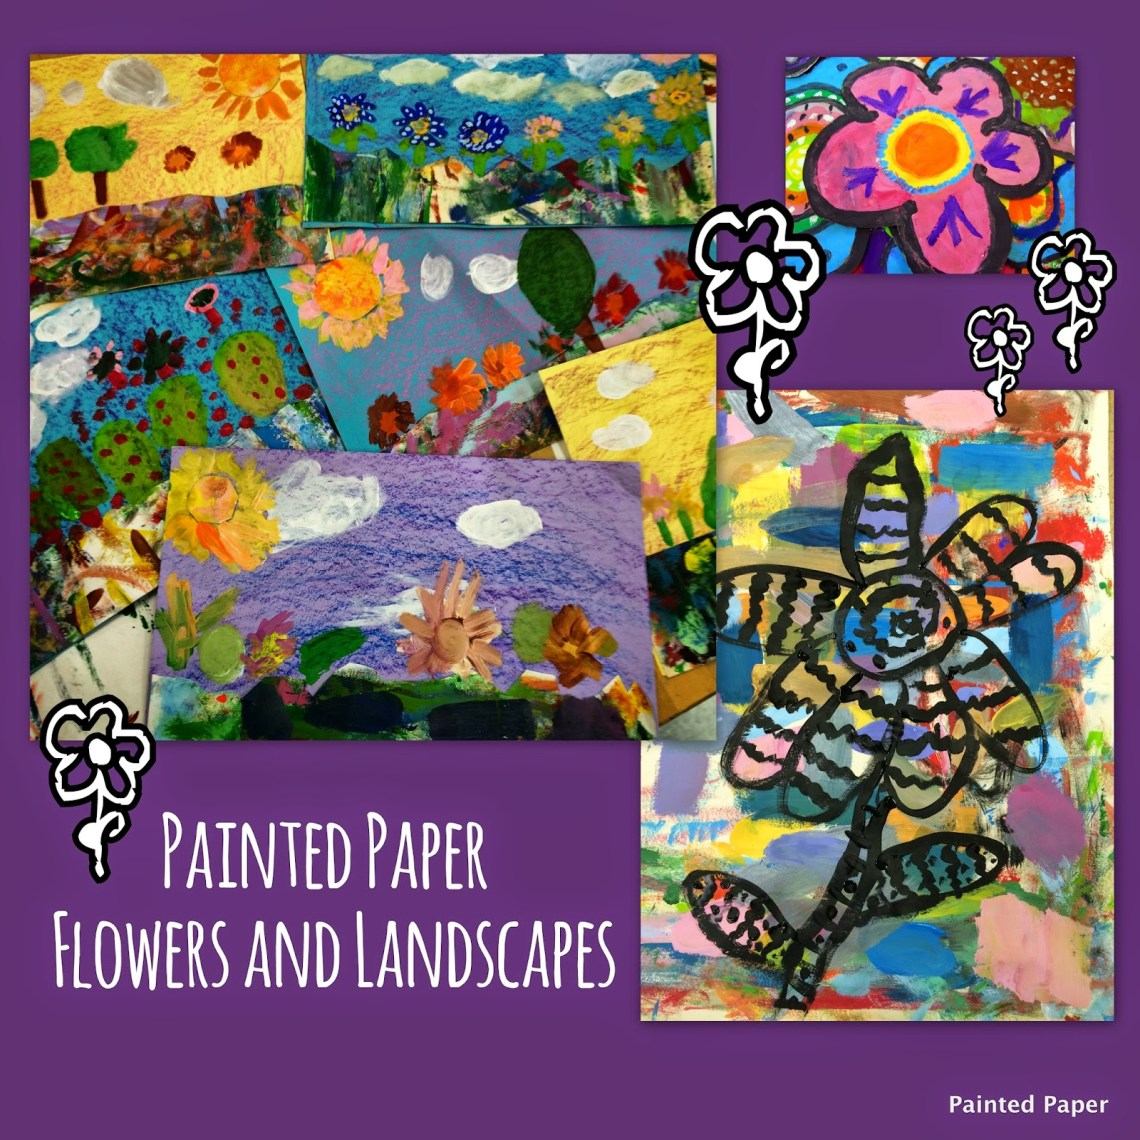 Painted Placemats projects-002